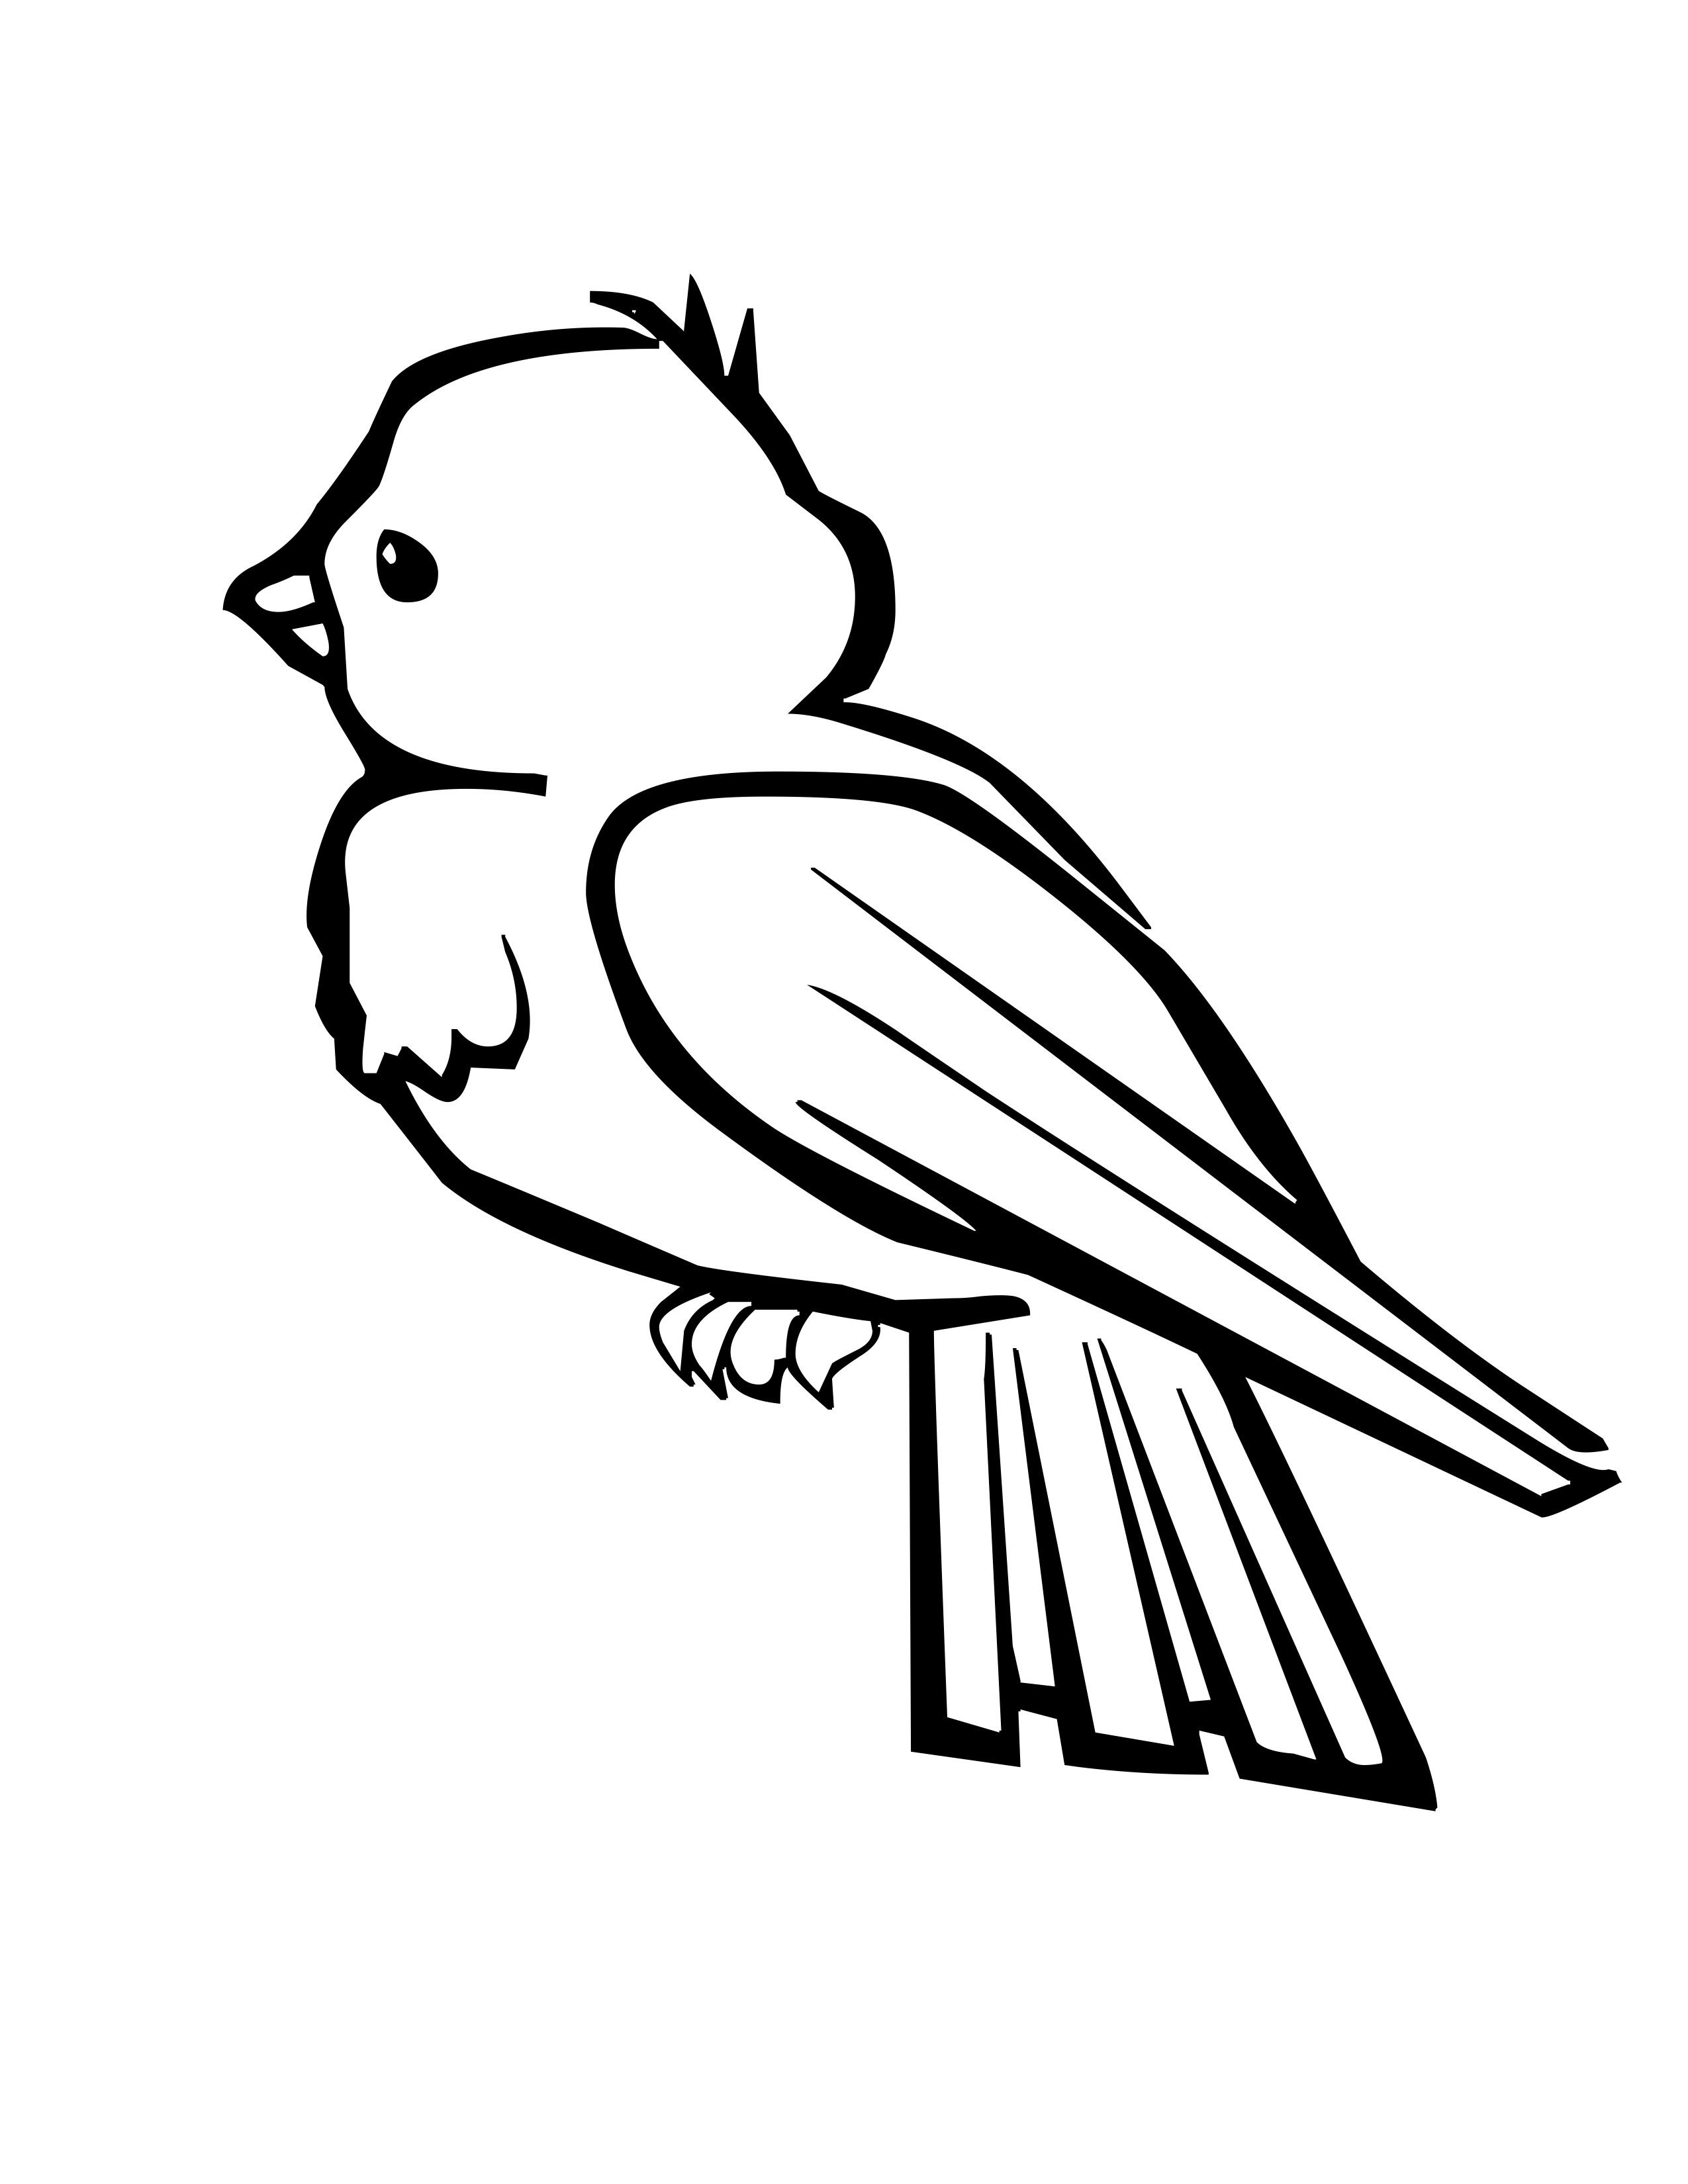 Coloring Page Of Bluebirds Angry Birds Coloring Pages Bluebird Click Image To Enlarge A Animal Coloring Pages Preschool Coloring Pages Cartoon Coloring Pages